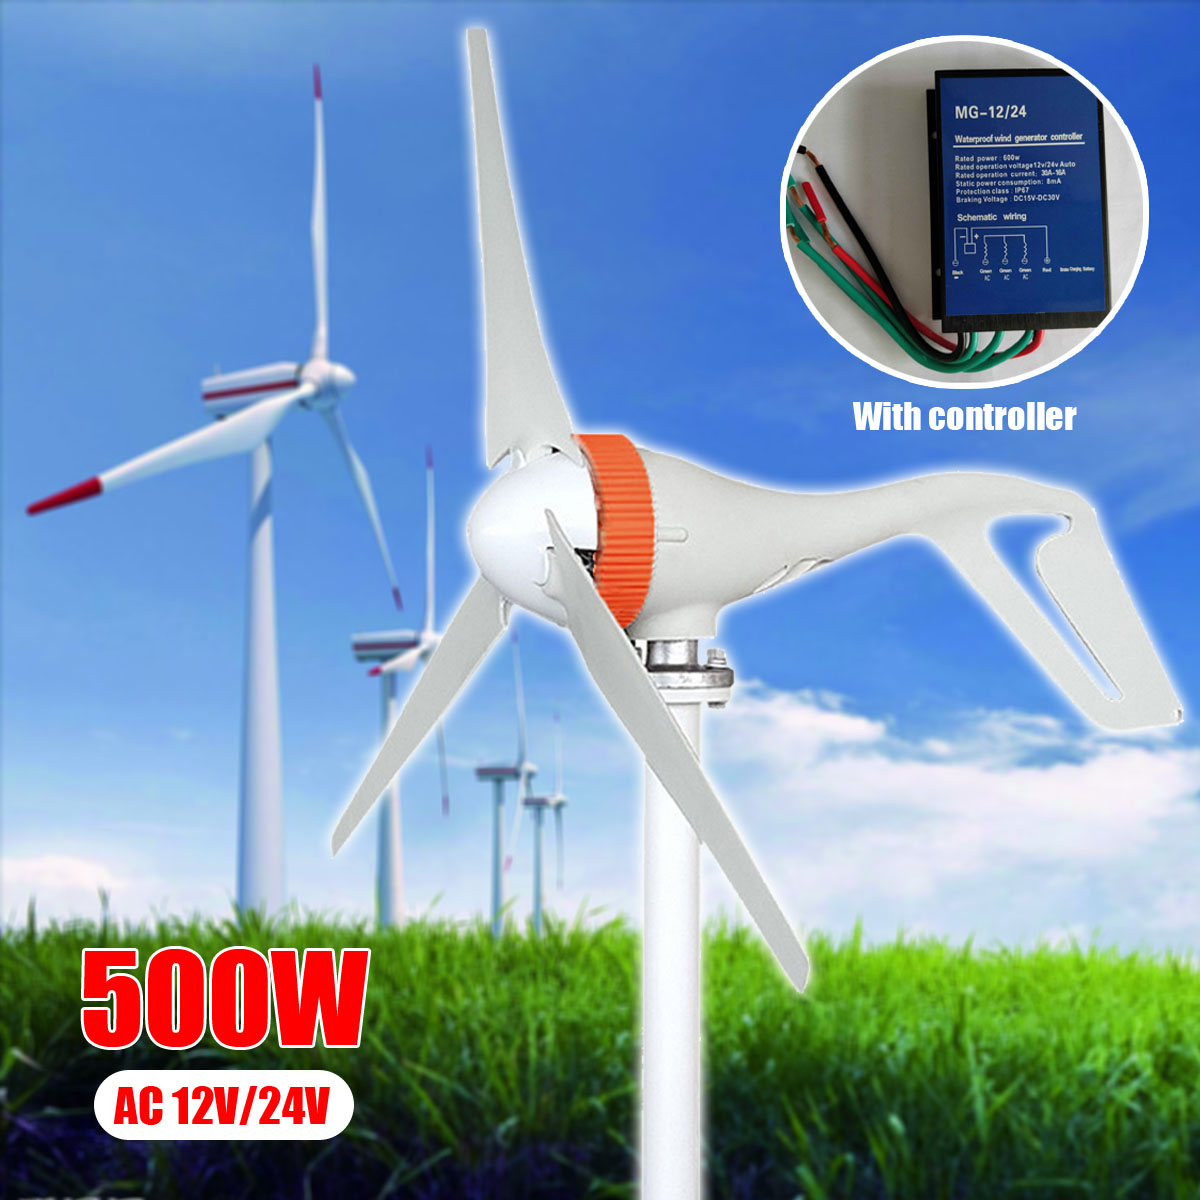 Ac 12v 24v 500w Miniature Wind Turbines Generator Mini Diagram Also Power Diagrams On Turbine 600 Watt Complete Kit 6pcs 100w Photovoltaic Pv Solar Panel Sytem Rv Boat Generators